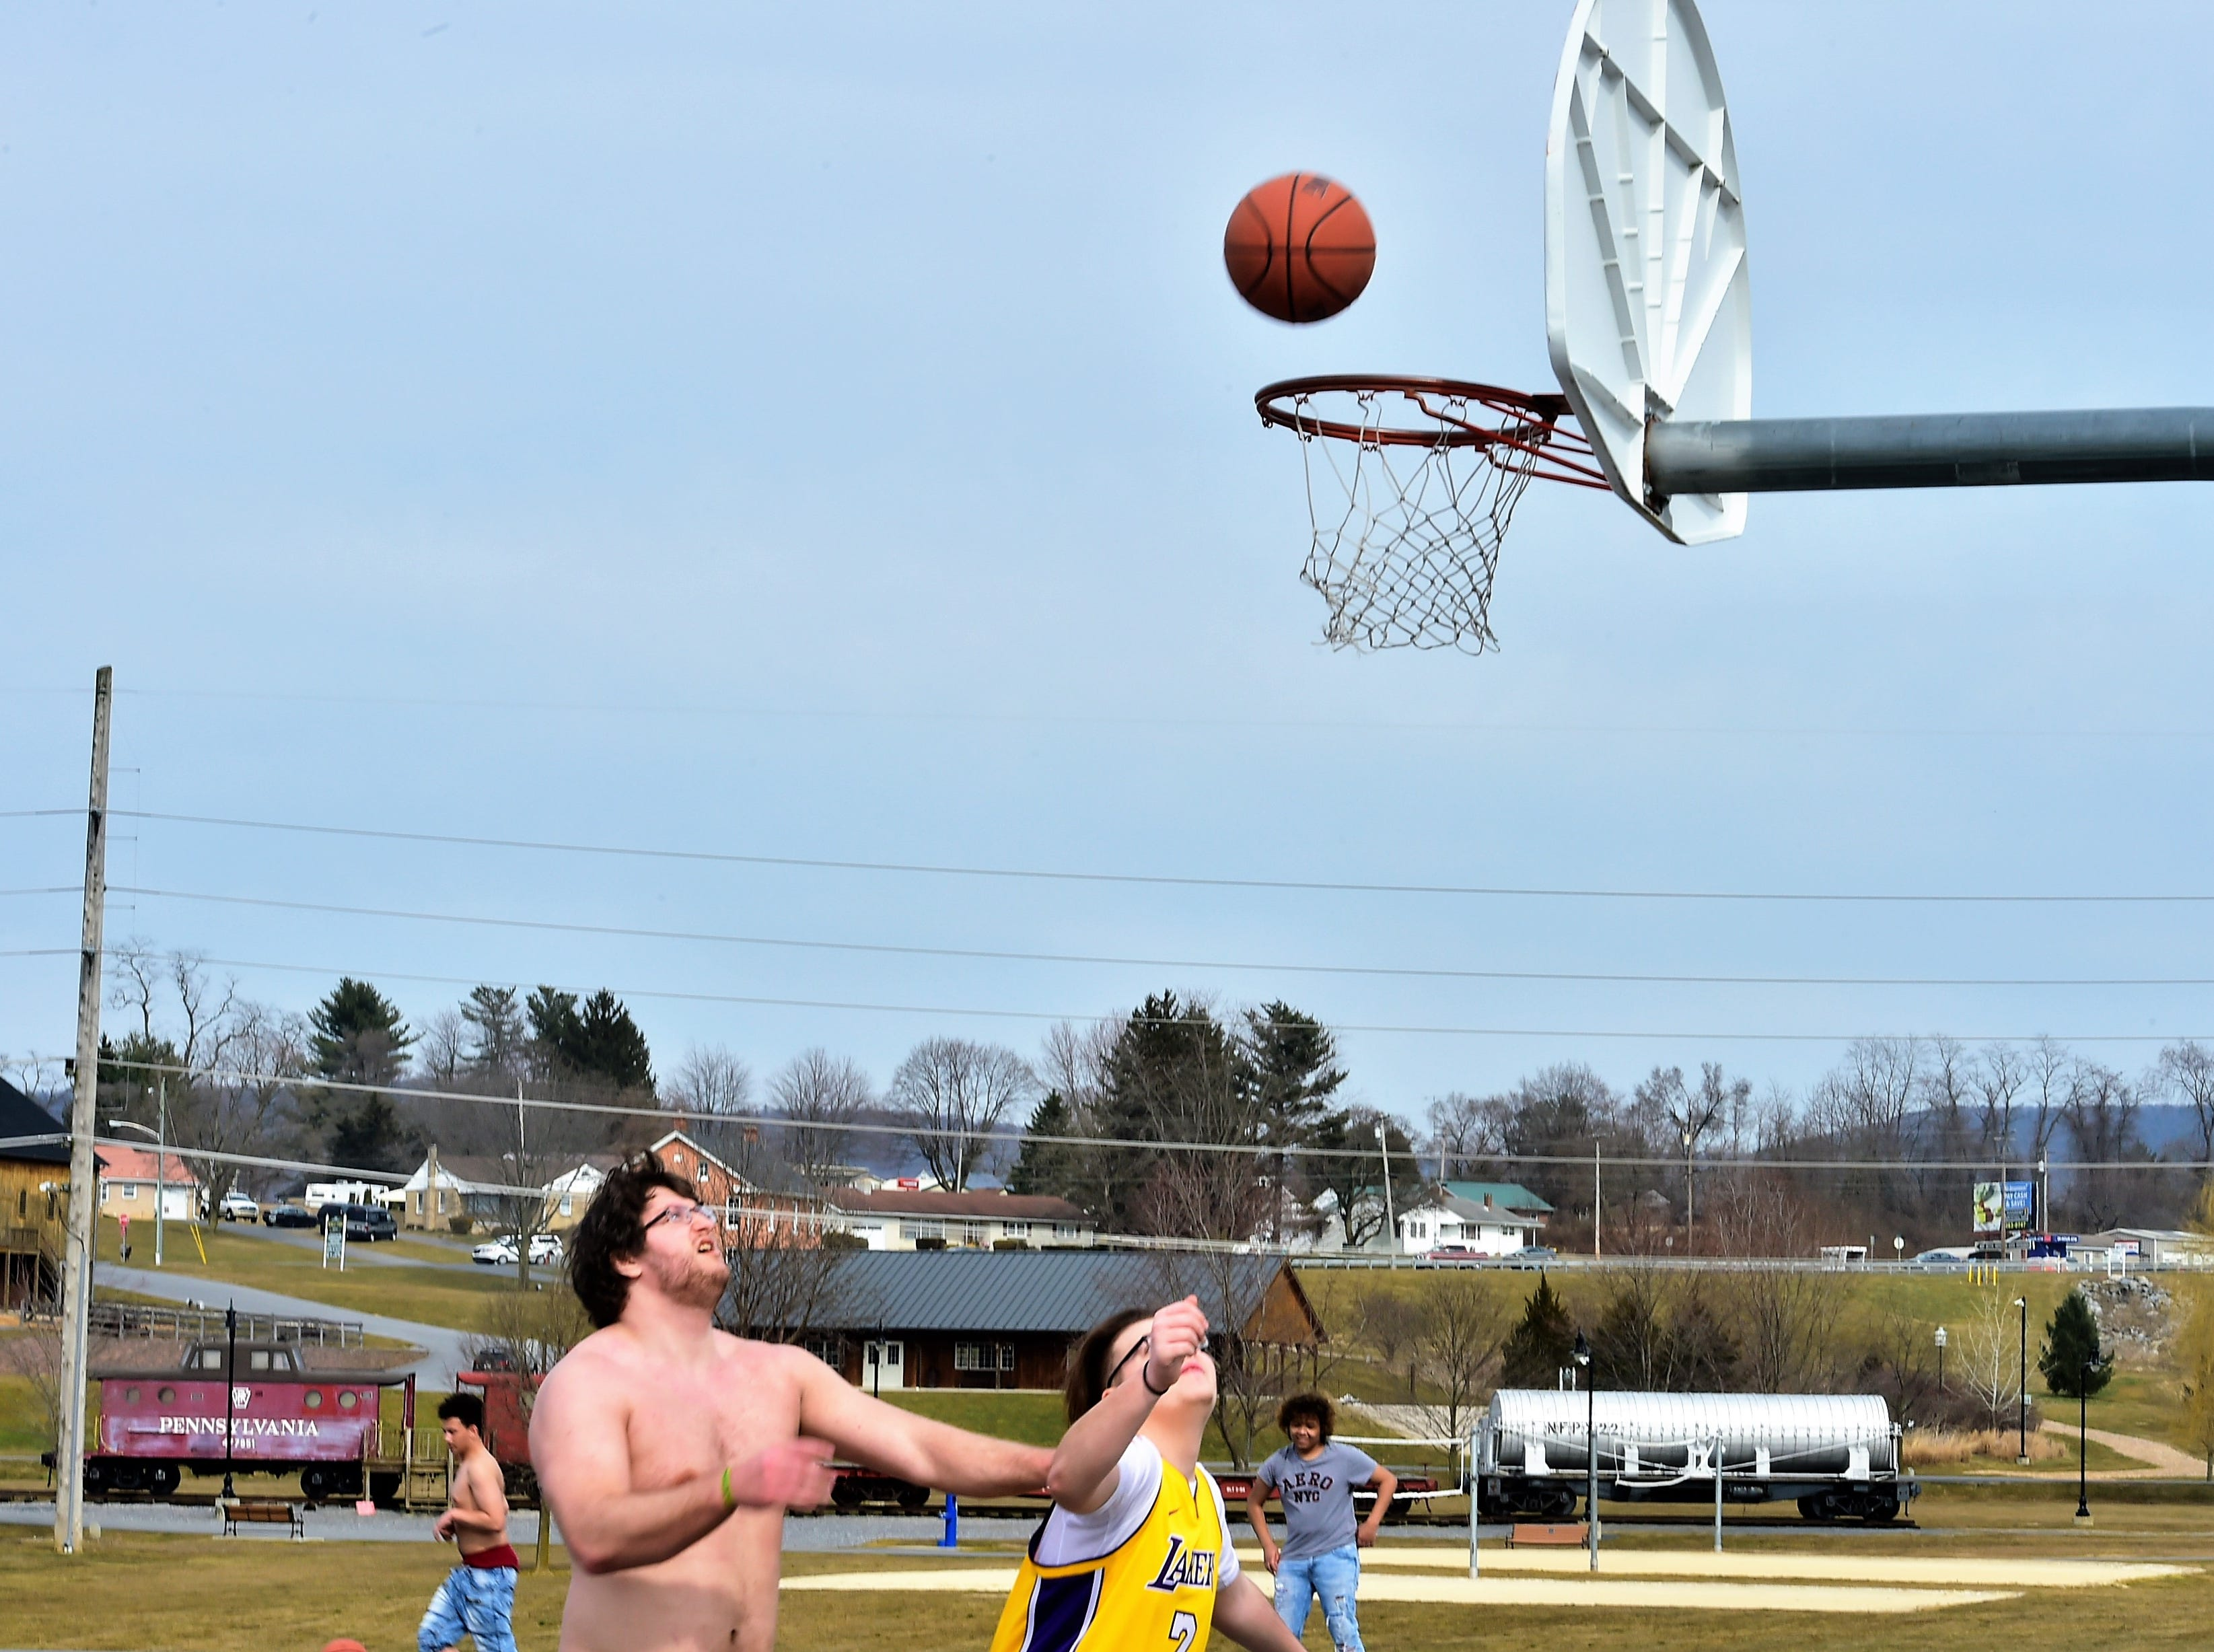 Friends from Shippensburg and Chambersburg play basketball on a warm Thursday afternoon, March 14, 2019, at Norlo Park in Fayetteville.